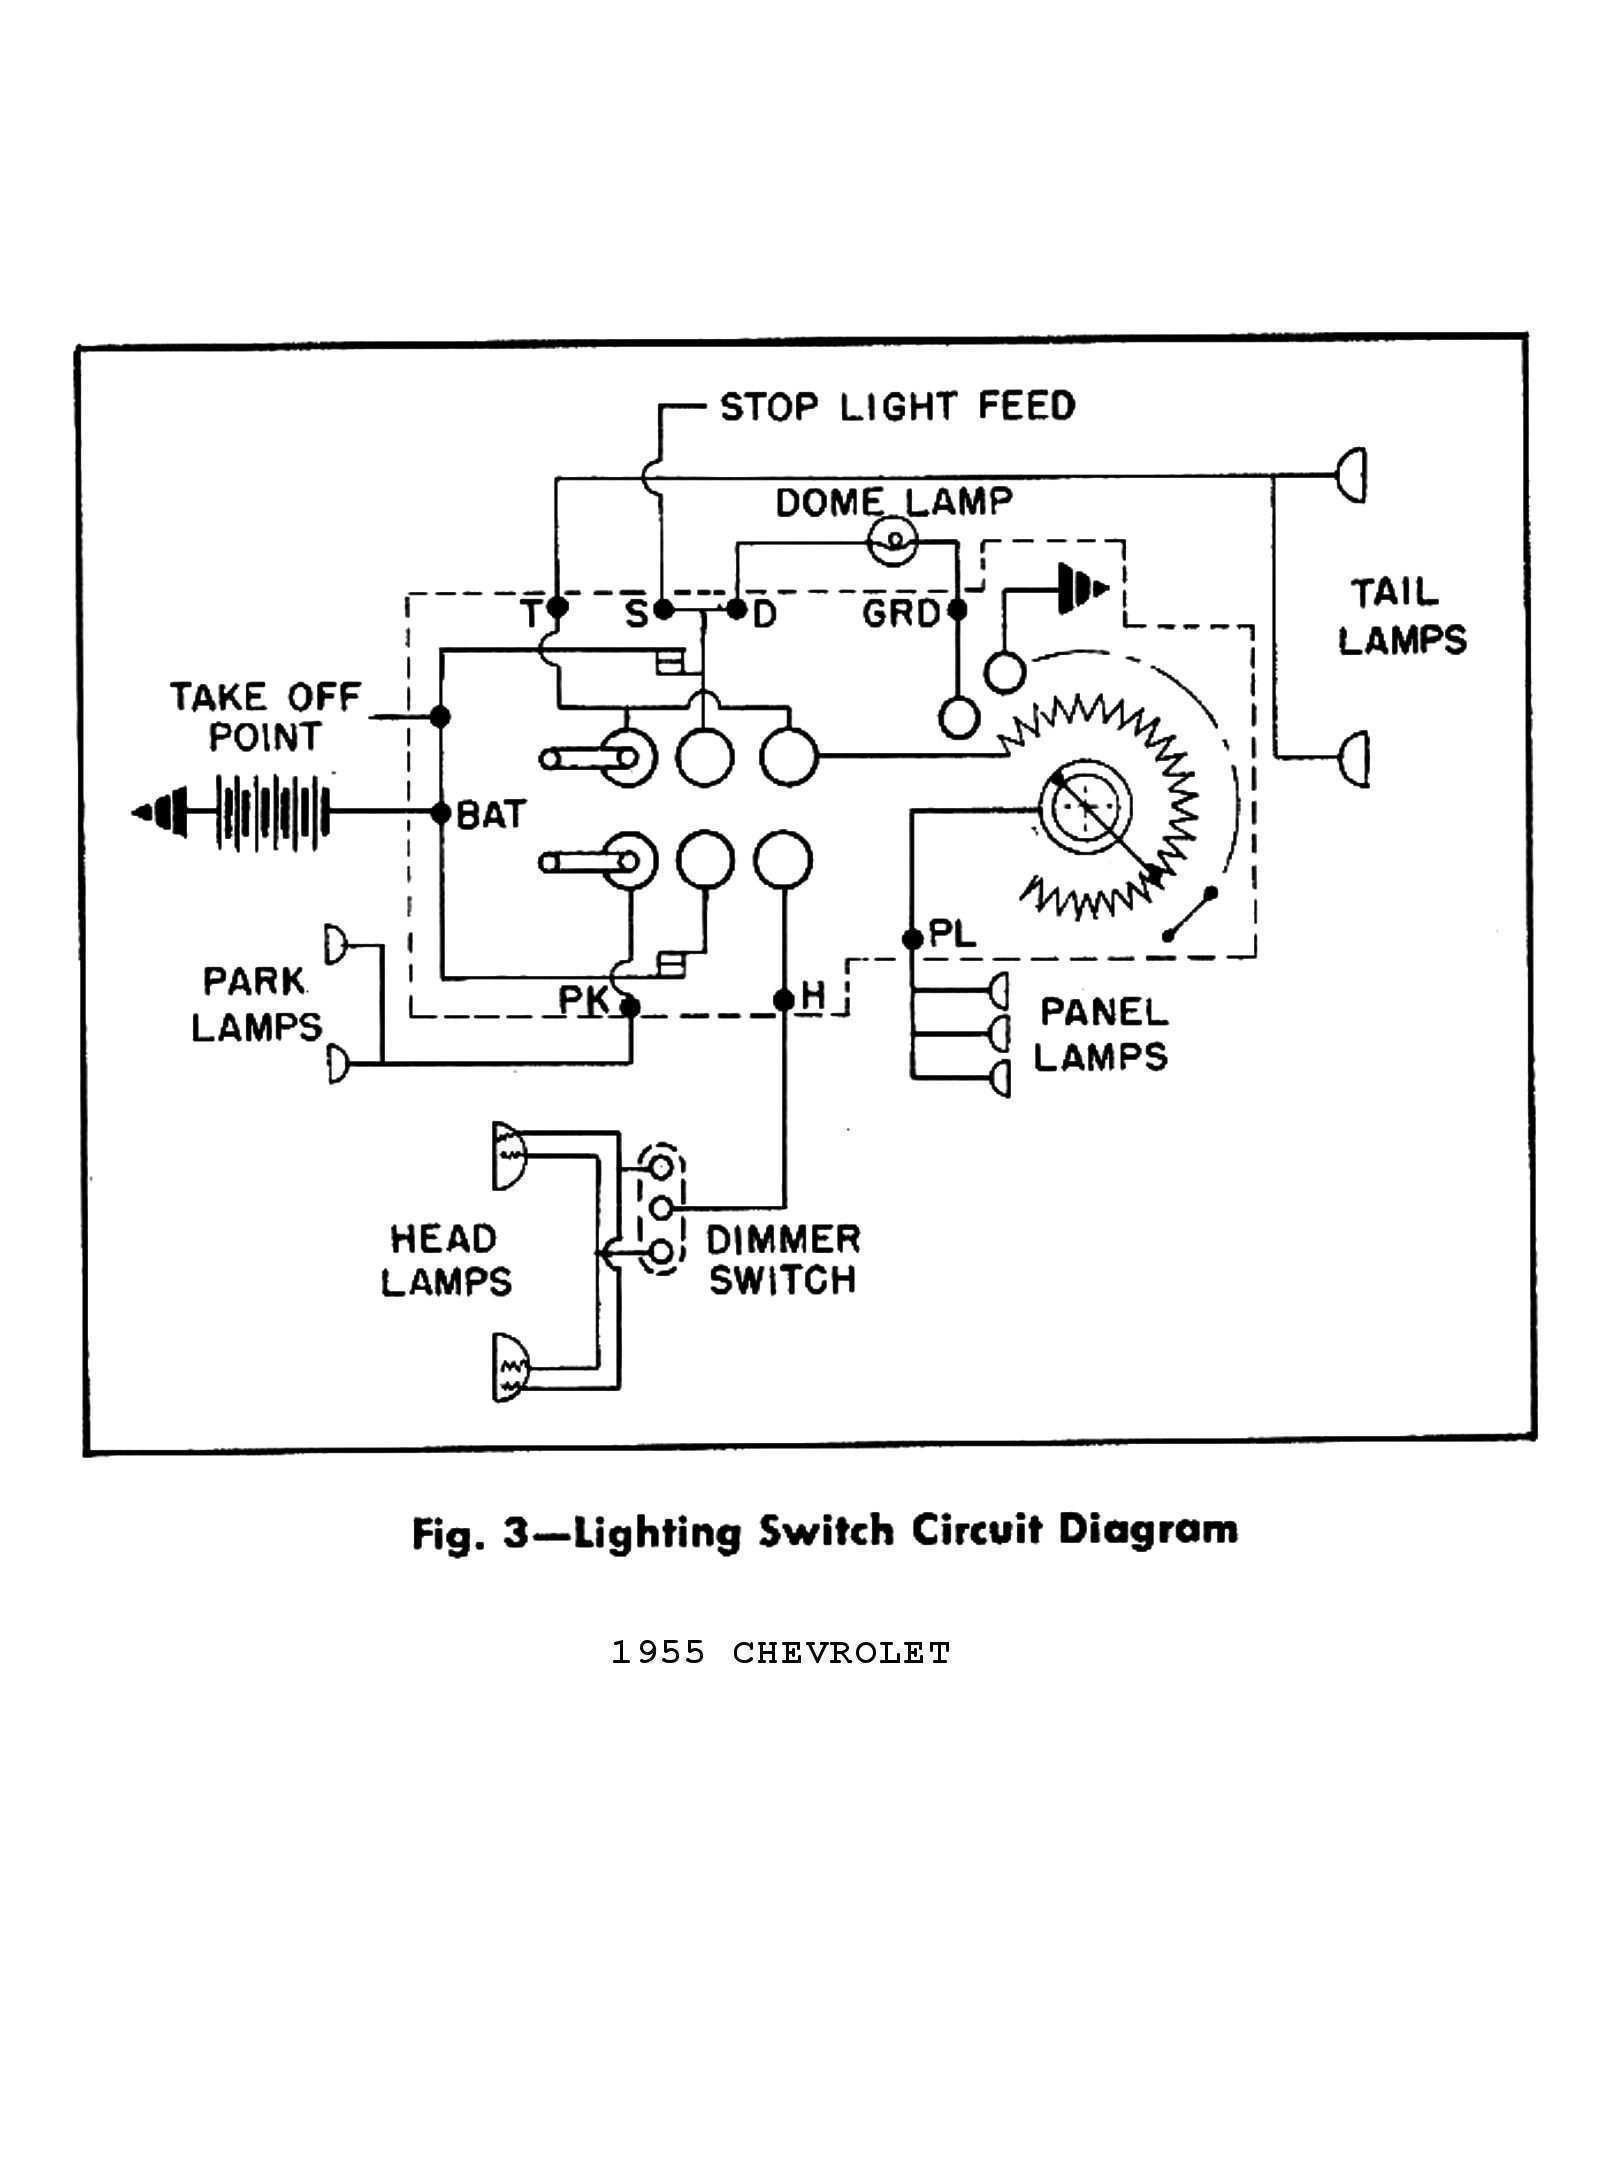 Chevy Truck Wiring Diagrams Free Chevy Truck Headlight Switch Wiring Diagram Free Picture Wiring Of Chevy Truck Wiring Diagrams Free